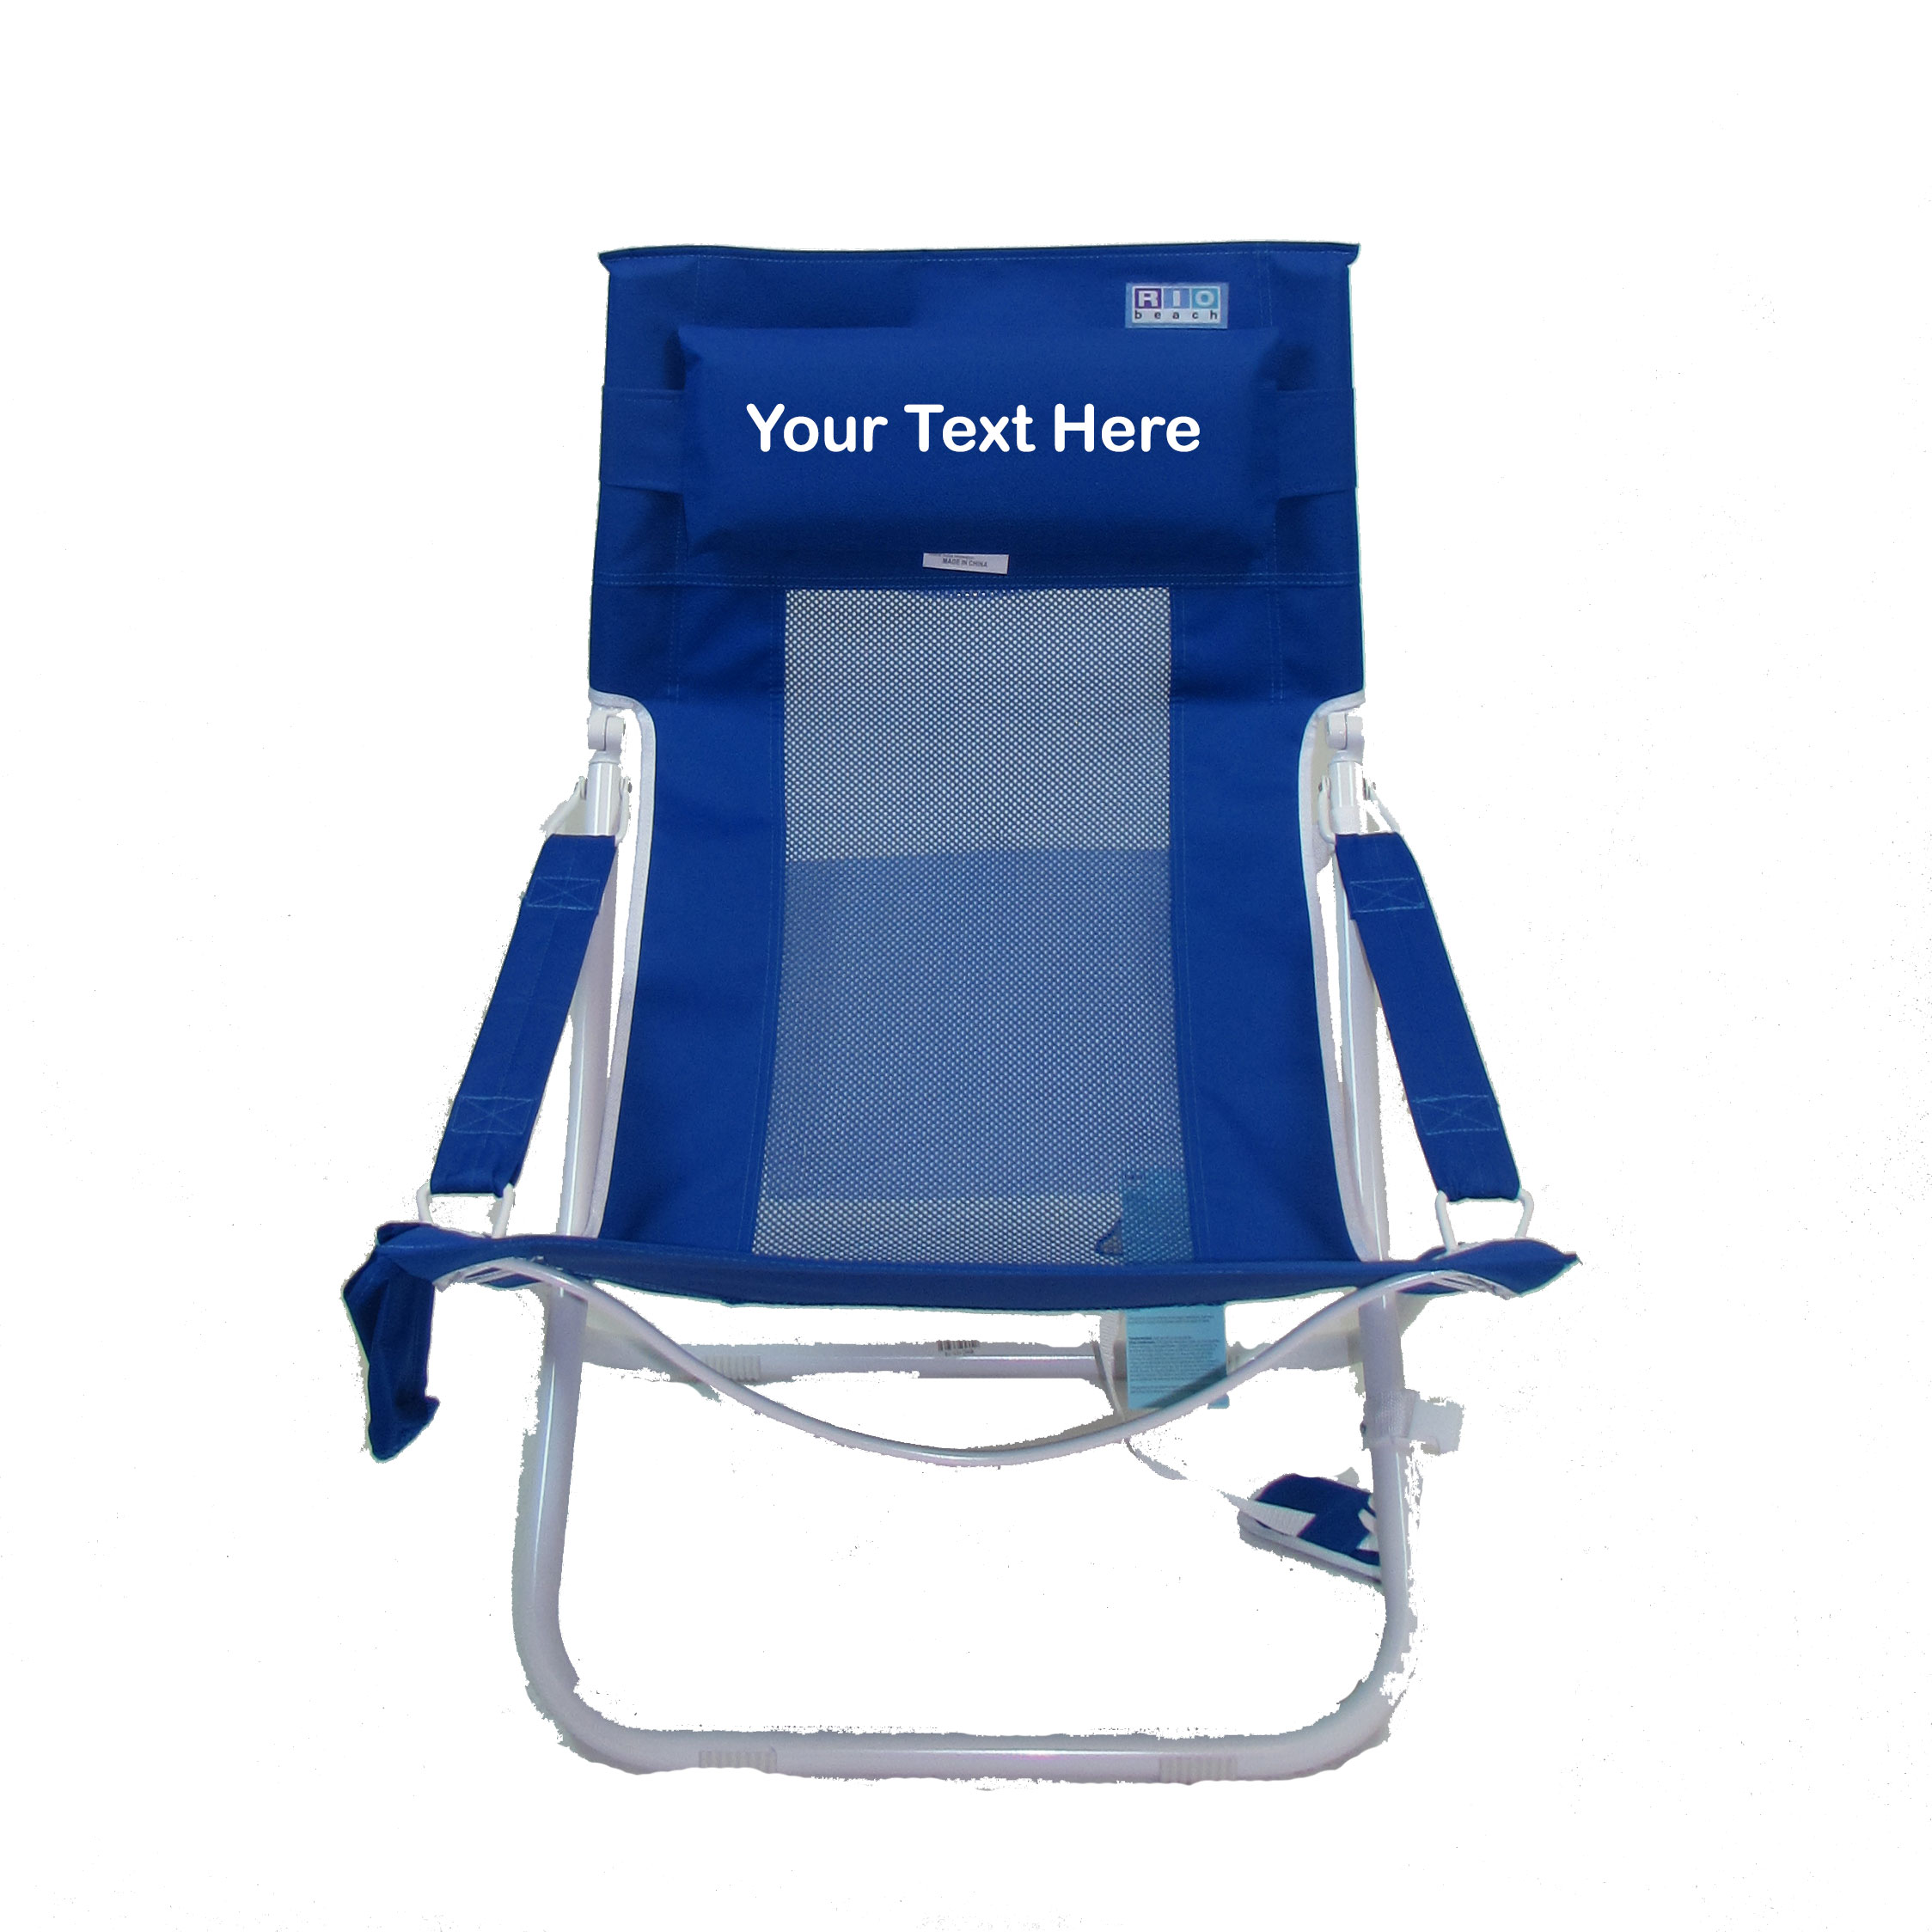 com brands llc chairs prod boy hi search aloha s chair truevalue rio beach packs src